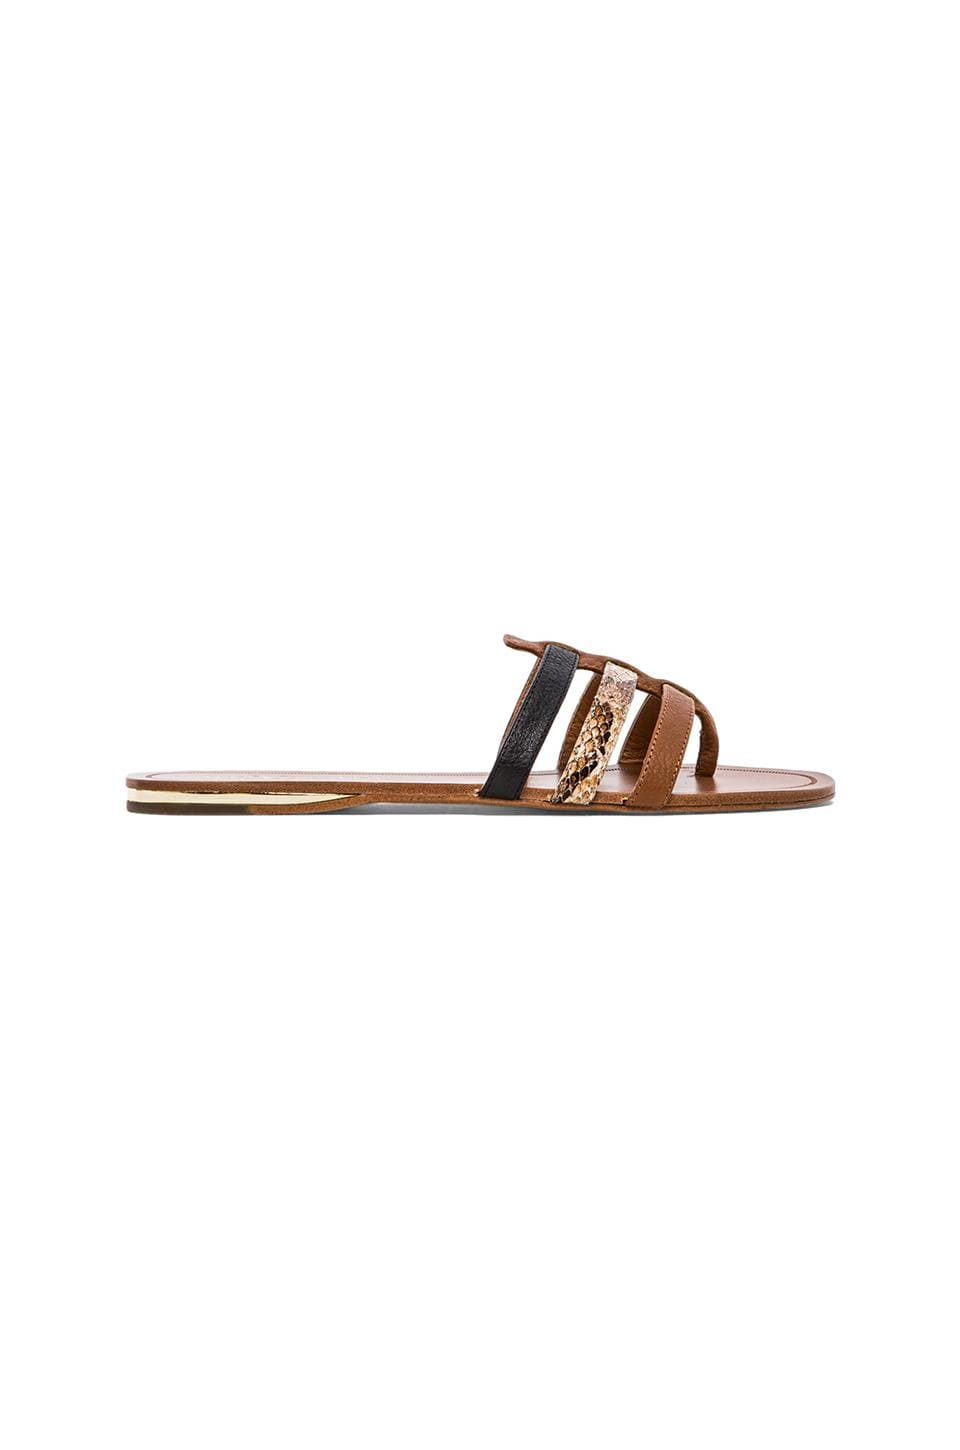 Yosi Samra Corey Patent Leather Sandal in Natural